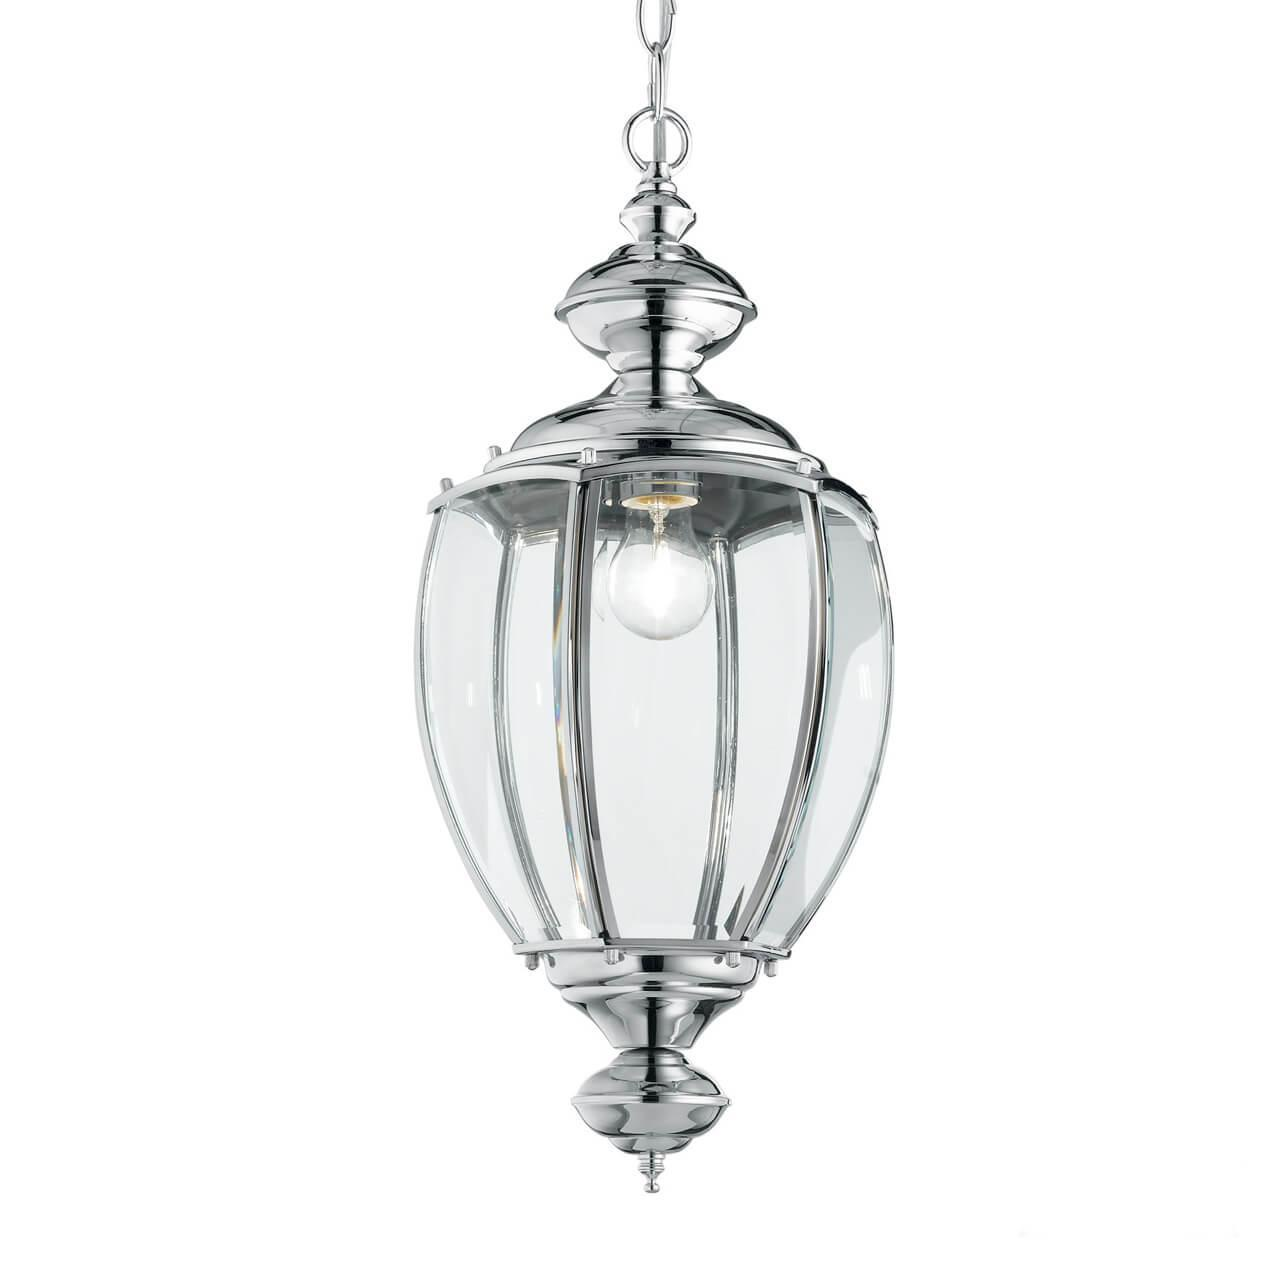 Подвесной светильник Ideal Lux Norma SP1 Cromo, E27, 60 Вт ideal lux подвесной светодиодный светильник ideal lux fluo wide 1200 4000k white